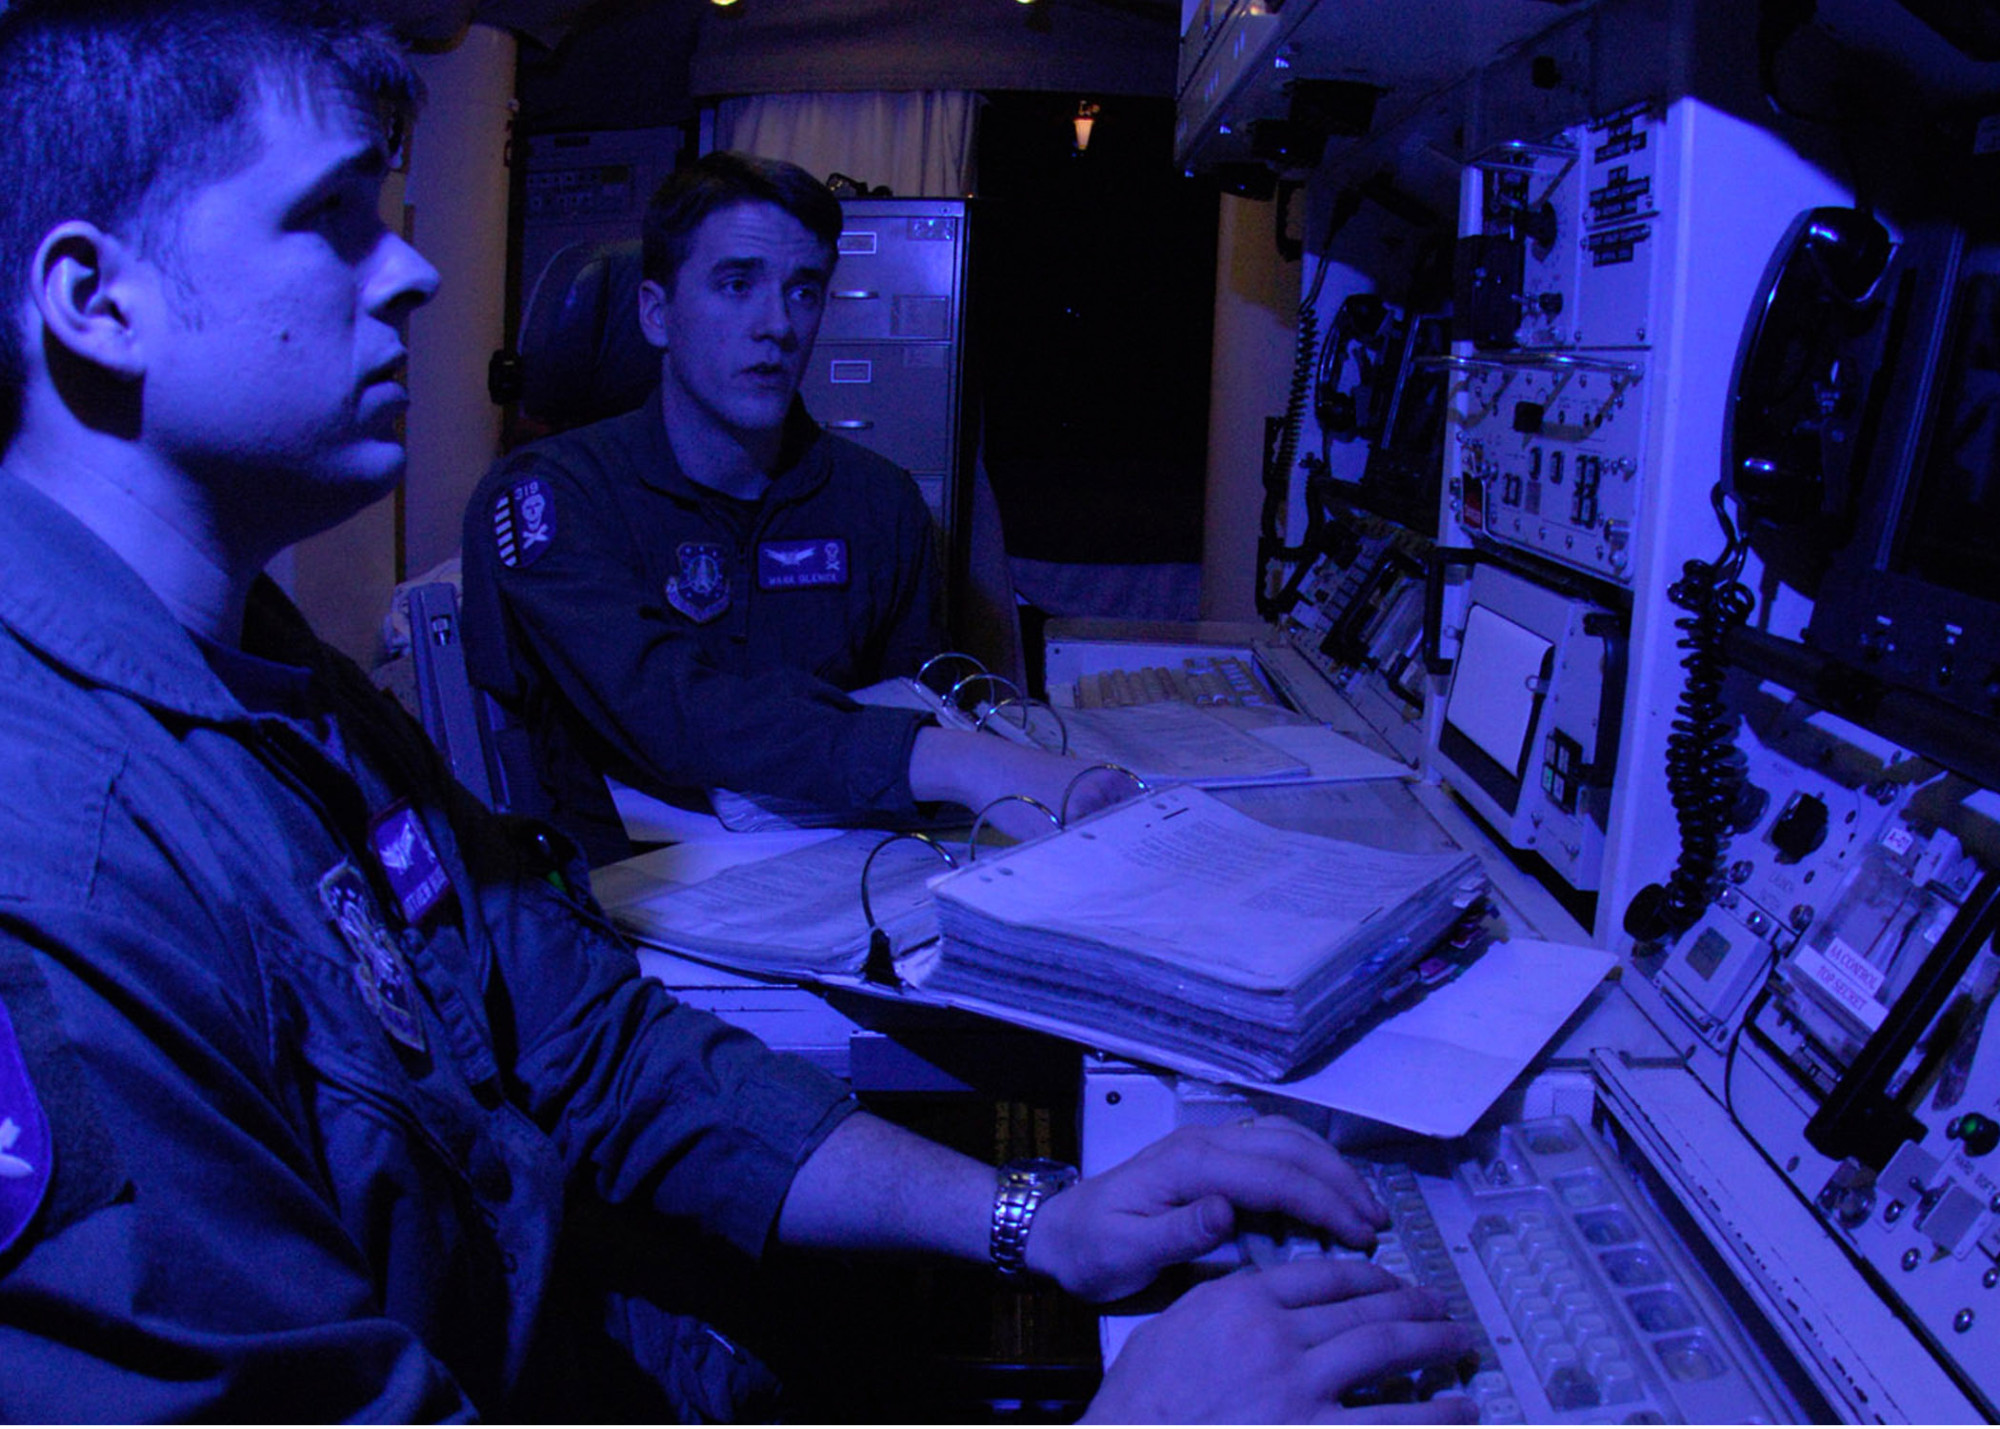 A pair of Air Force missile launch control officers, having passed their monthly proficiency tests, pull alert at a Minuteman III missile site.